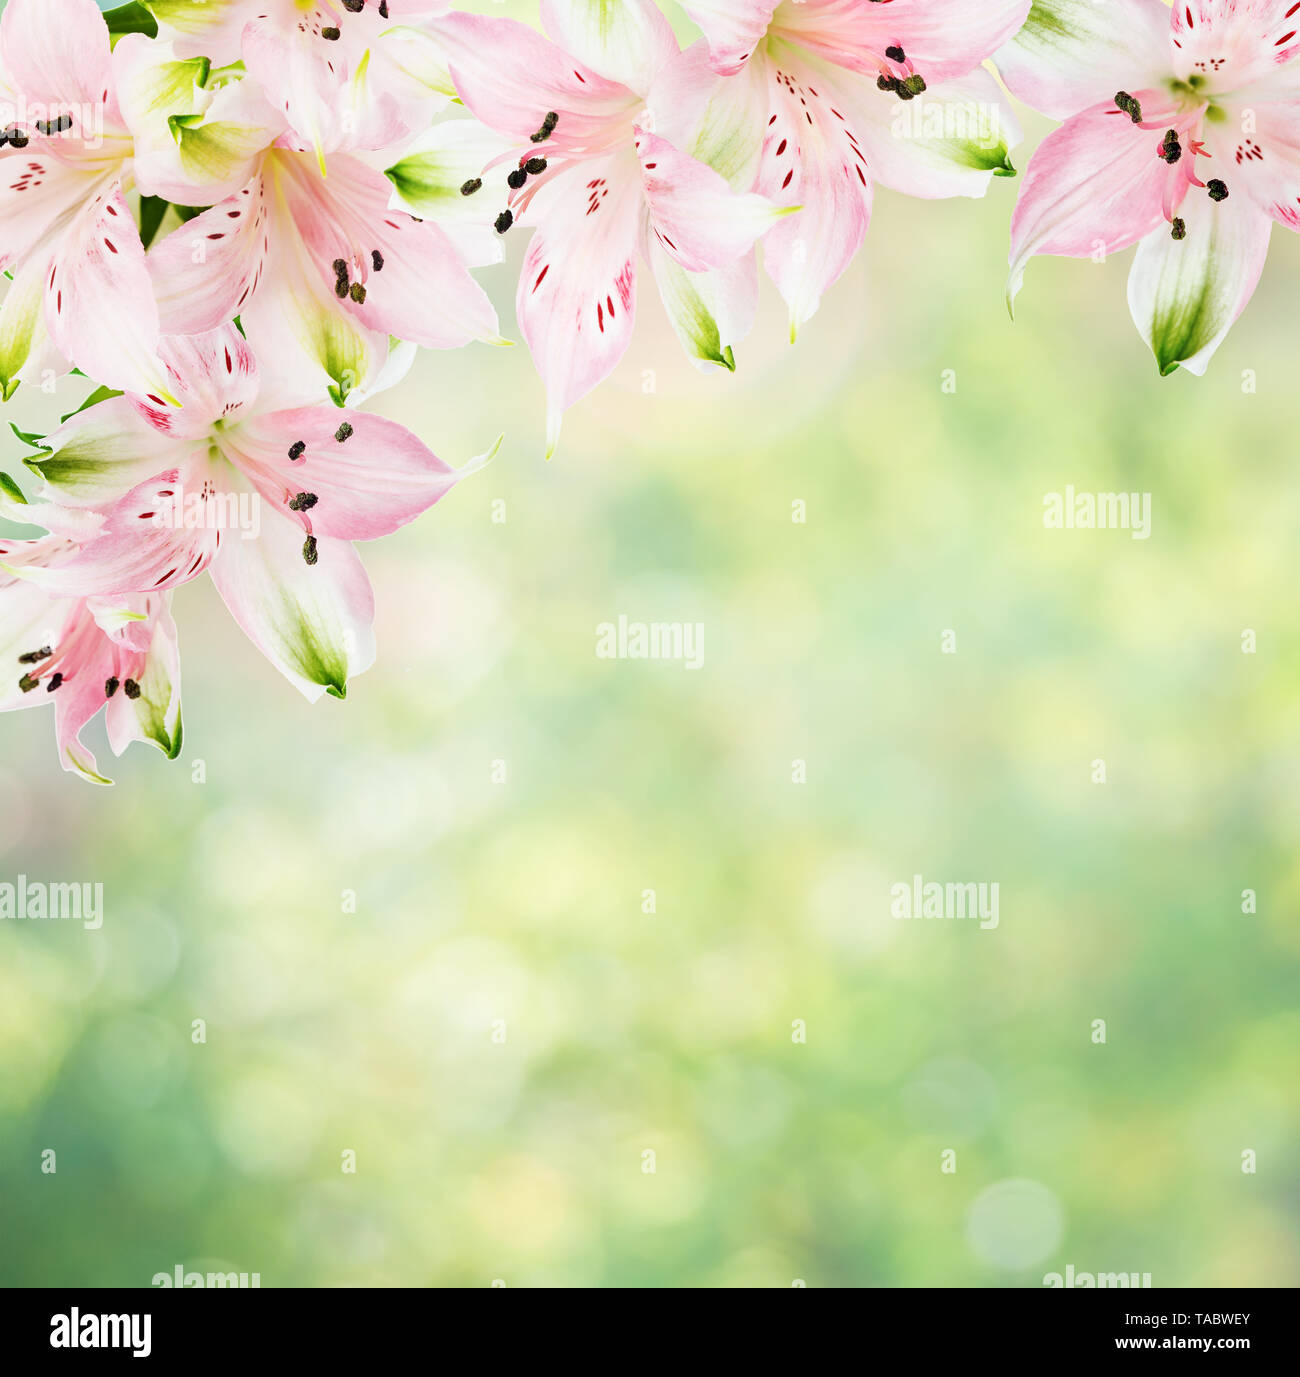 Beautiful frame of pink alstroemeria flowers on the blurred abstract natural yellow-green background with bokeh, with copy-space - Stock Image